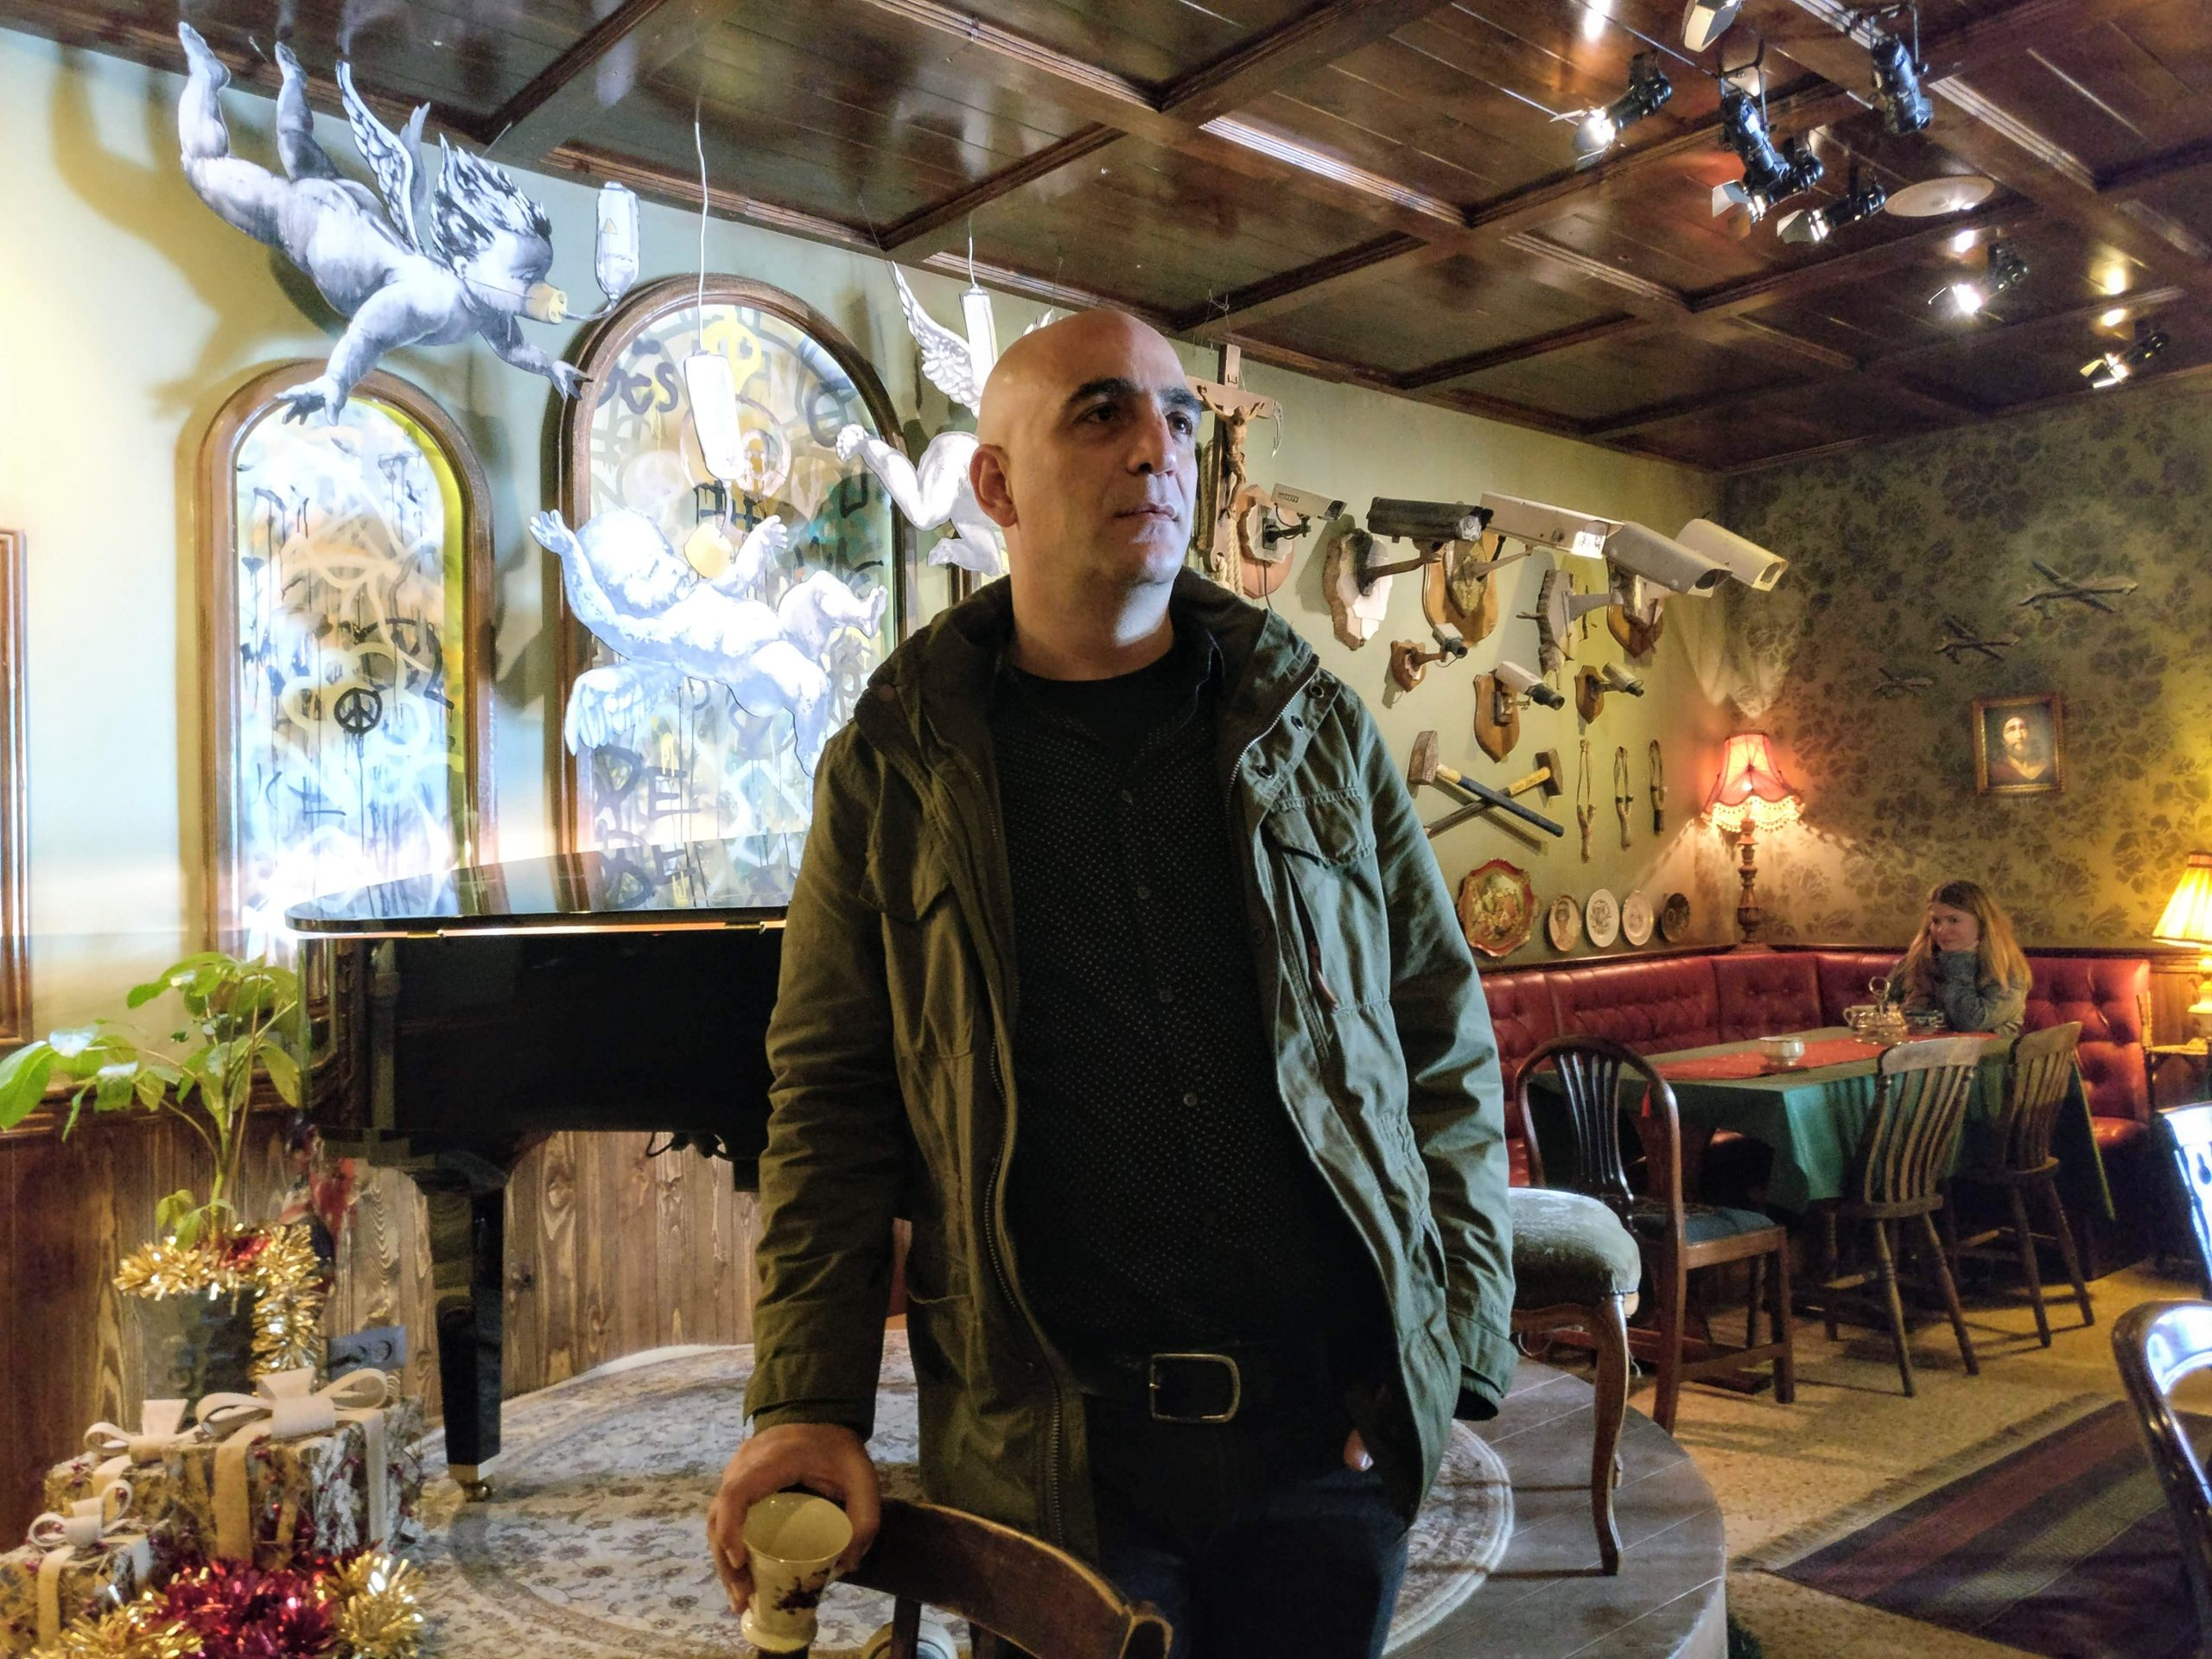 An Interview With Wisam Salsaa The Manager Of The Walled Off Hotel Inspiring City